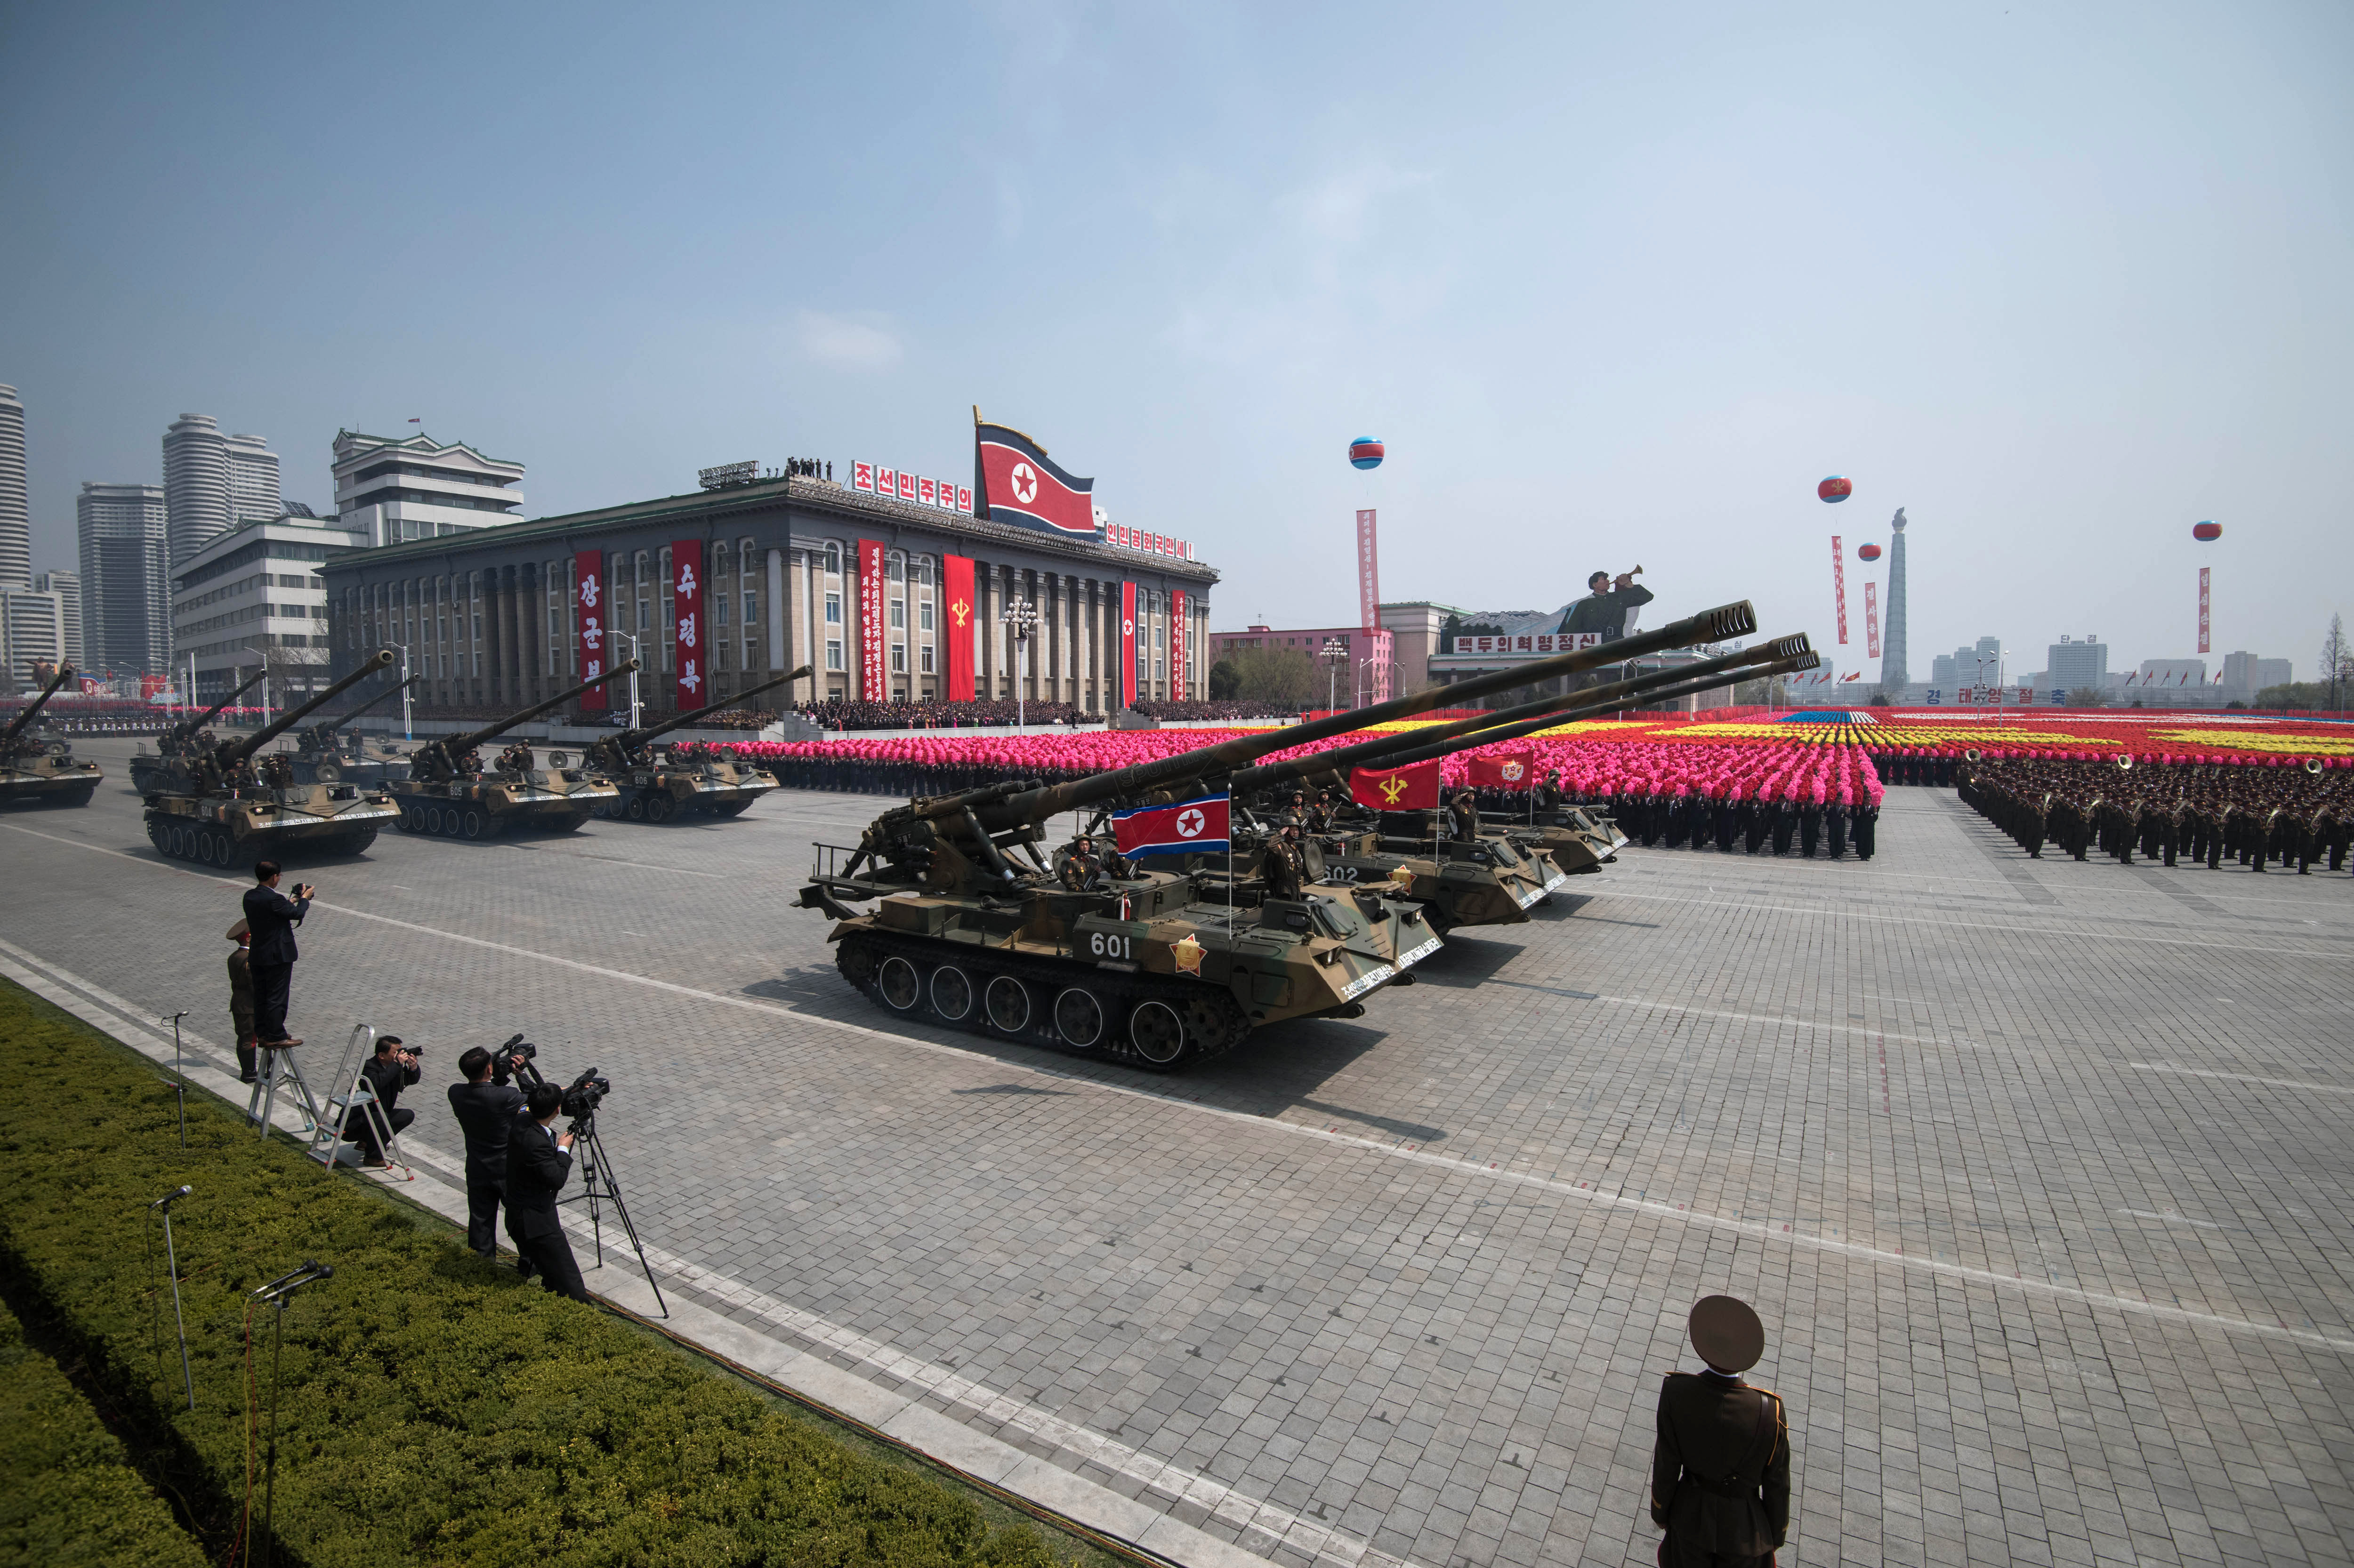 Korean People's Army (KPA) artillery pieces displayed on Kim Il-Sung square during a military parade marking the 105th anniversary of the birth of late North Korean leader Kim Il-Sung in Pyongyang on April 15, 2017.